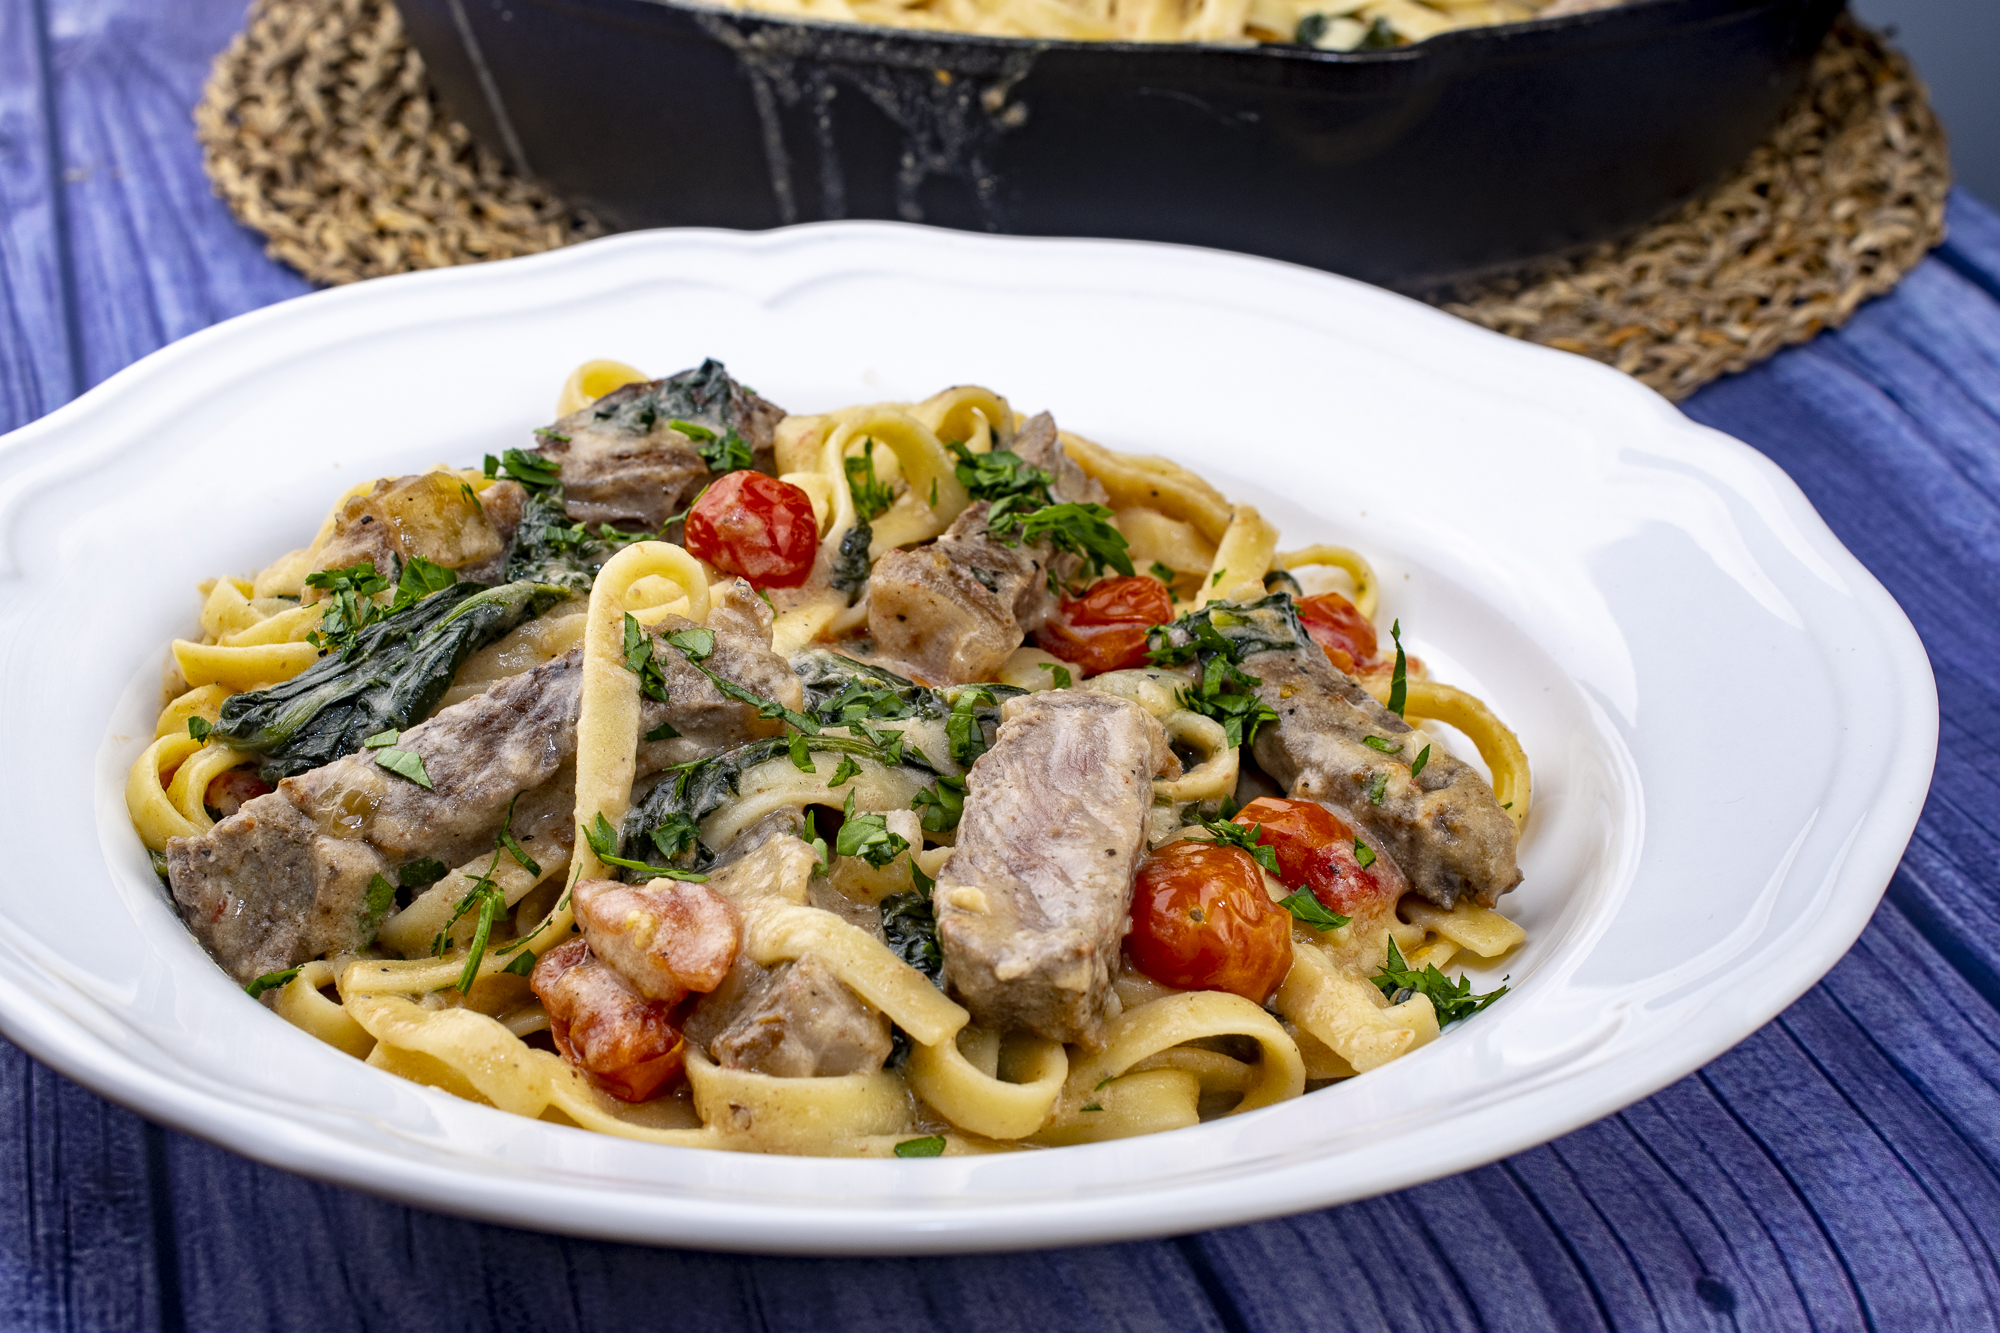 One Pot Fettuccine Alfredo with Spinach, Steak, and Cherry Tomatoes